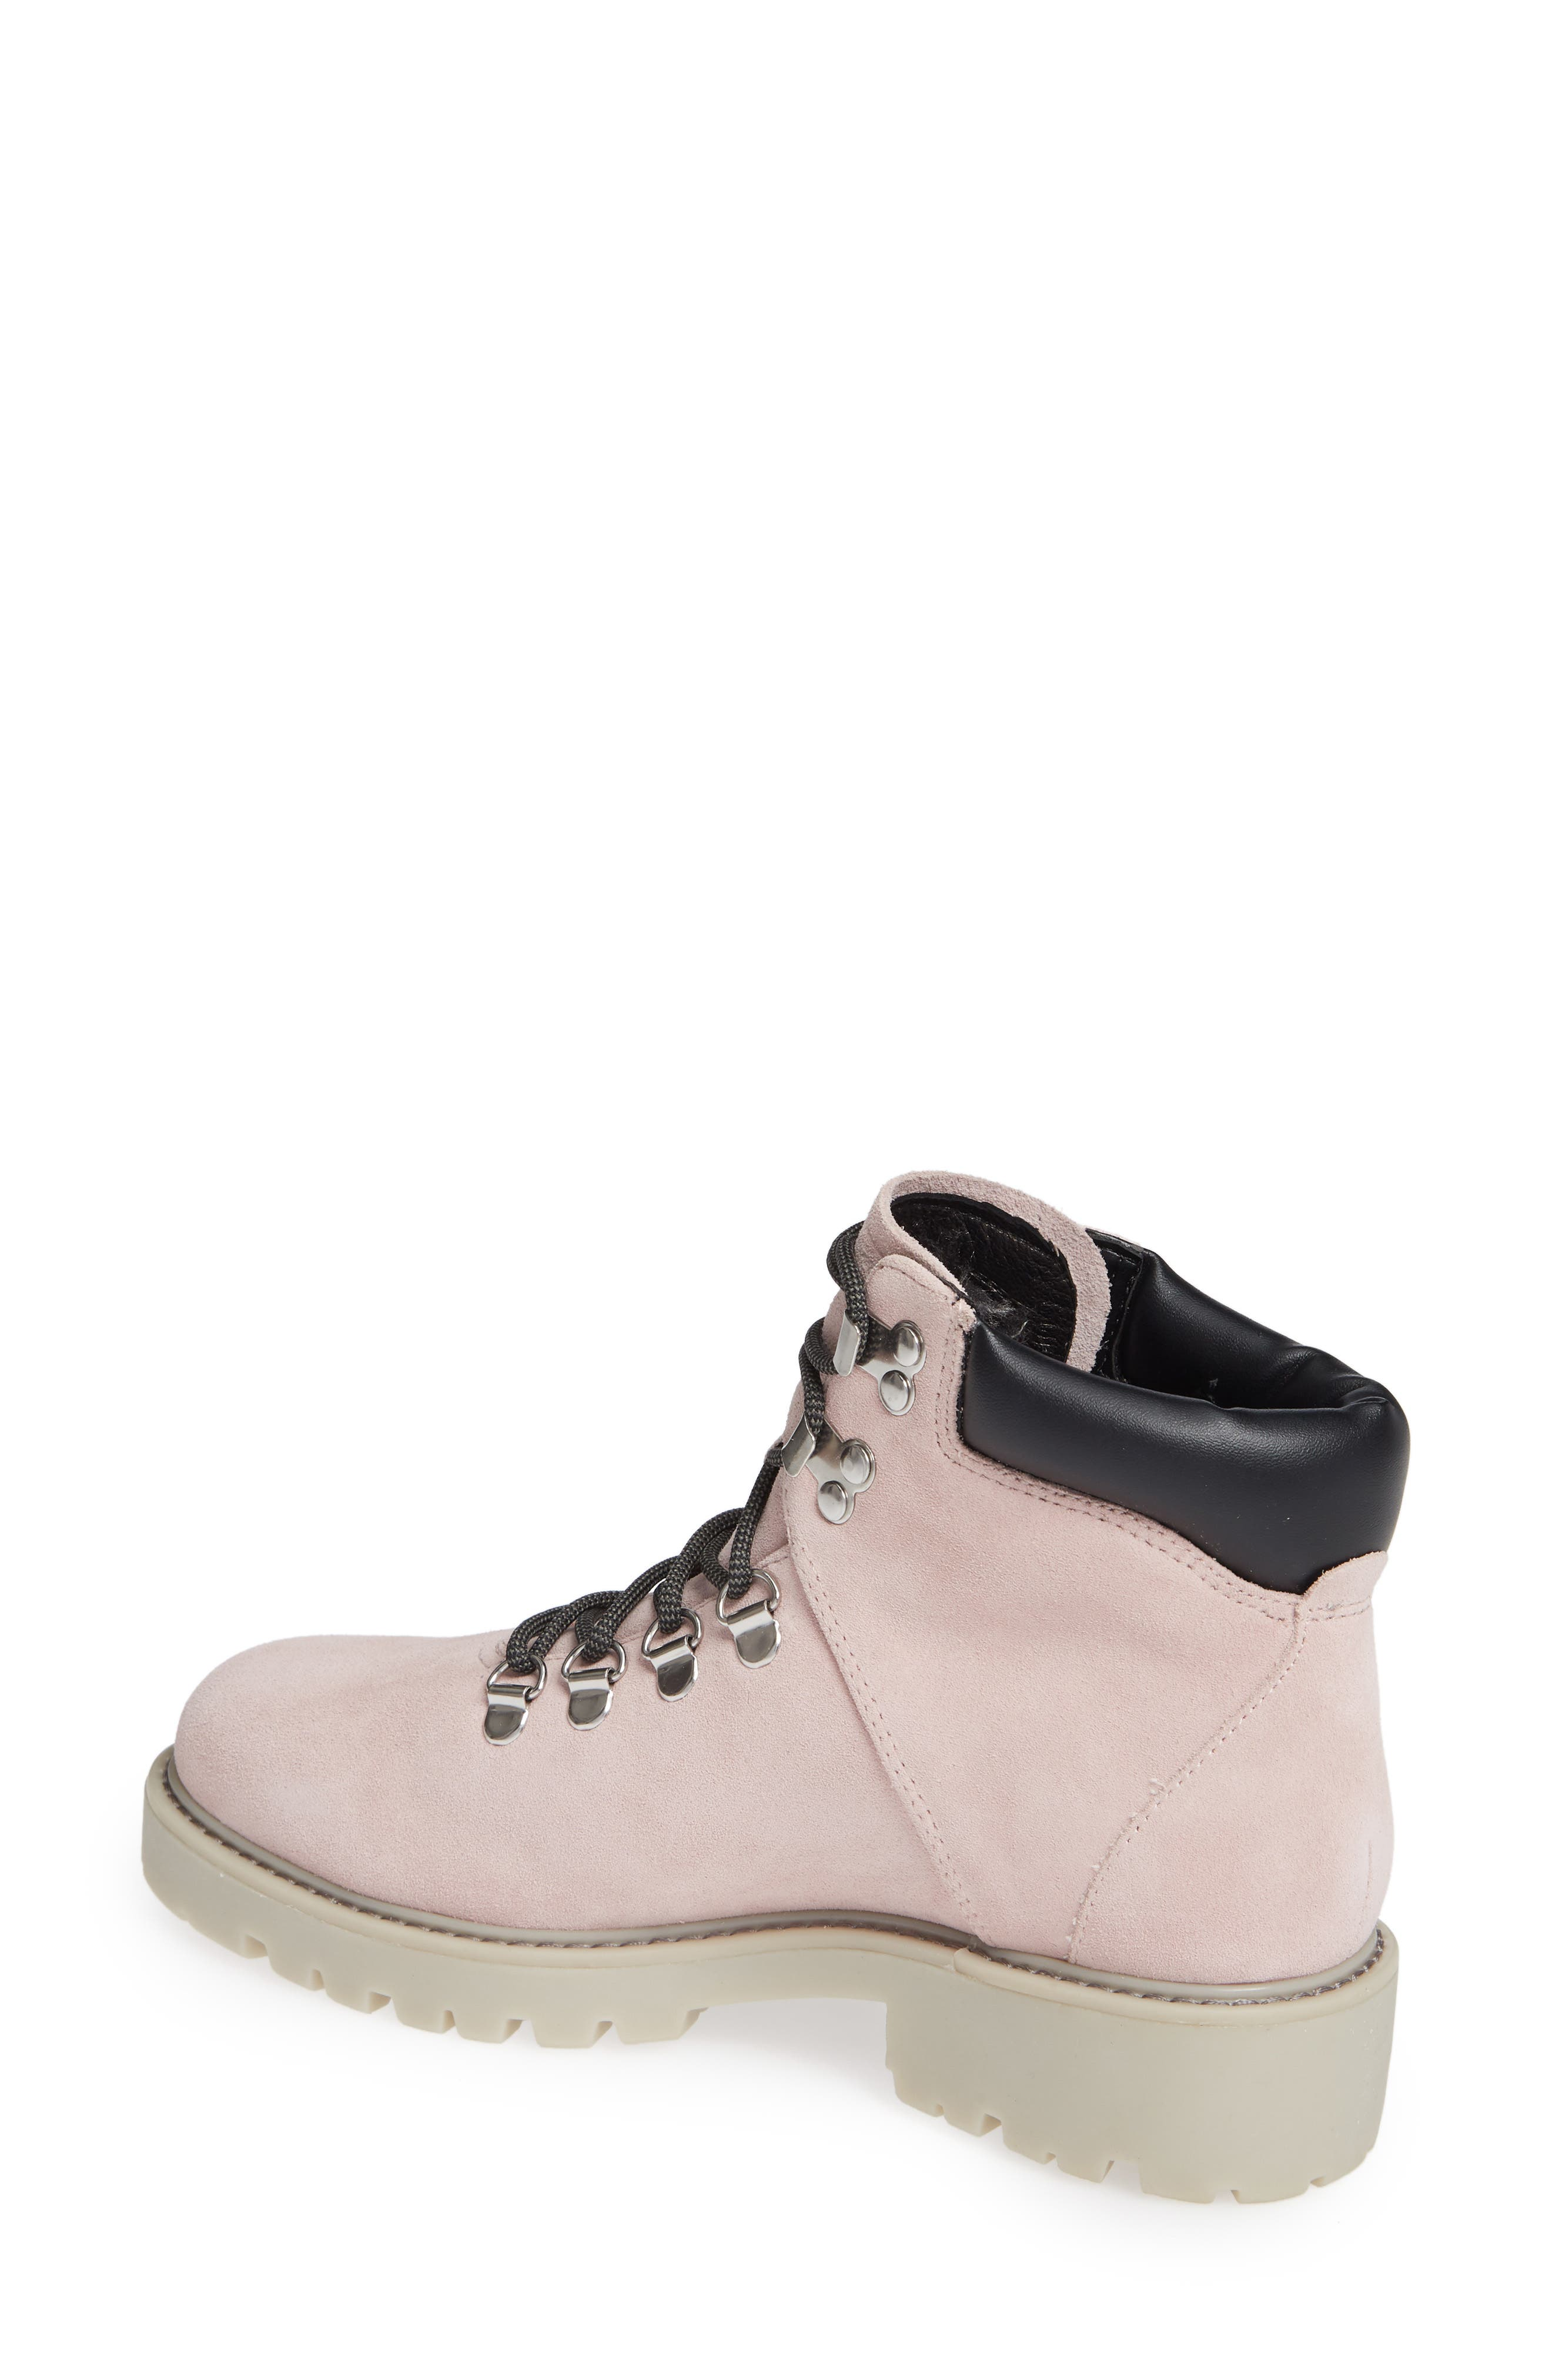 VAGABOND,                             Shoemakers Kenova Boot,                             Alternate thumbnail 2, color,                             MILKSHAKE SUEDE